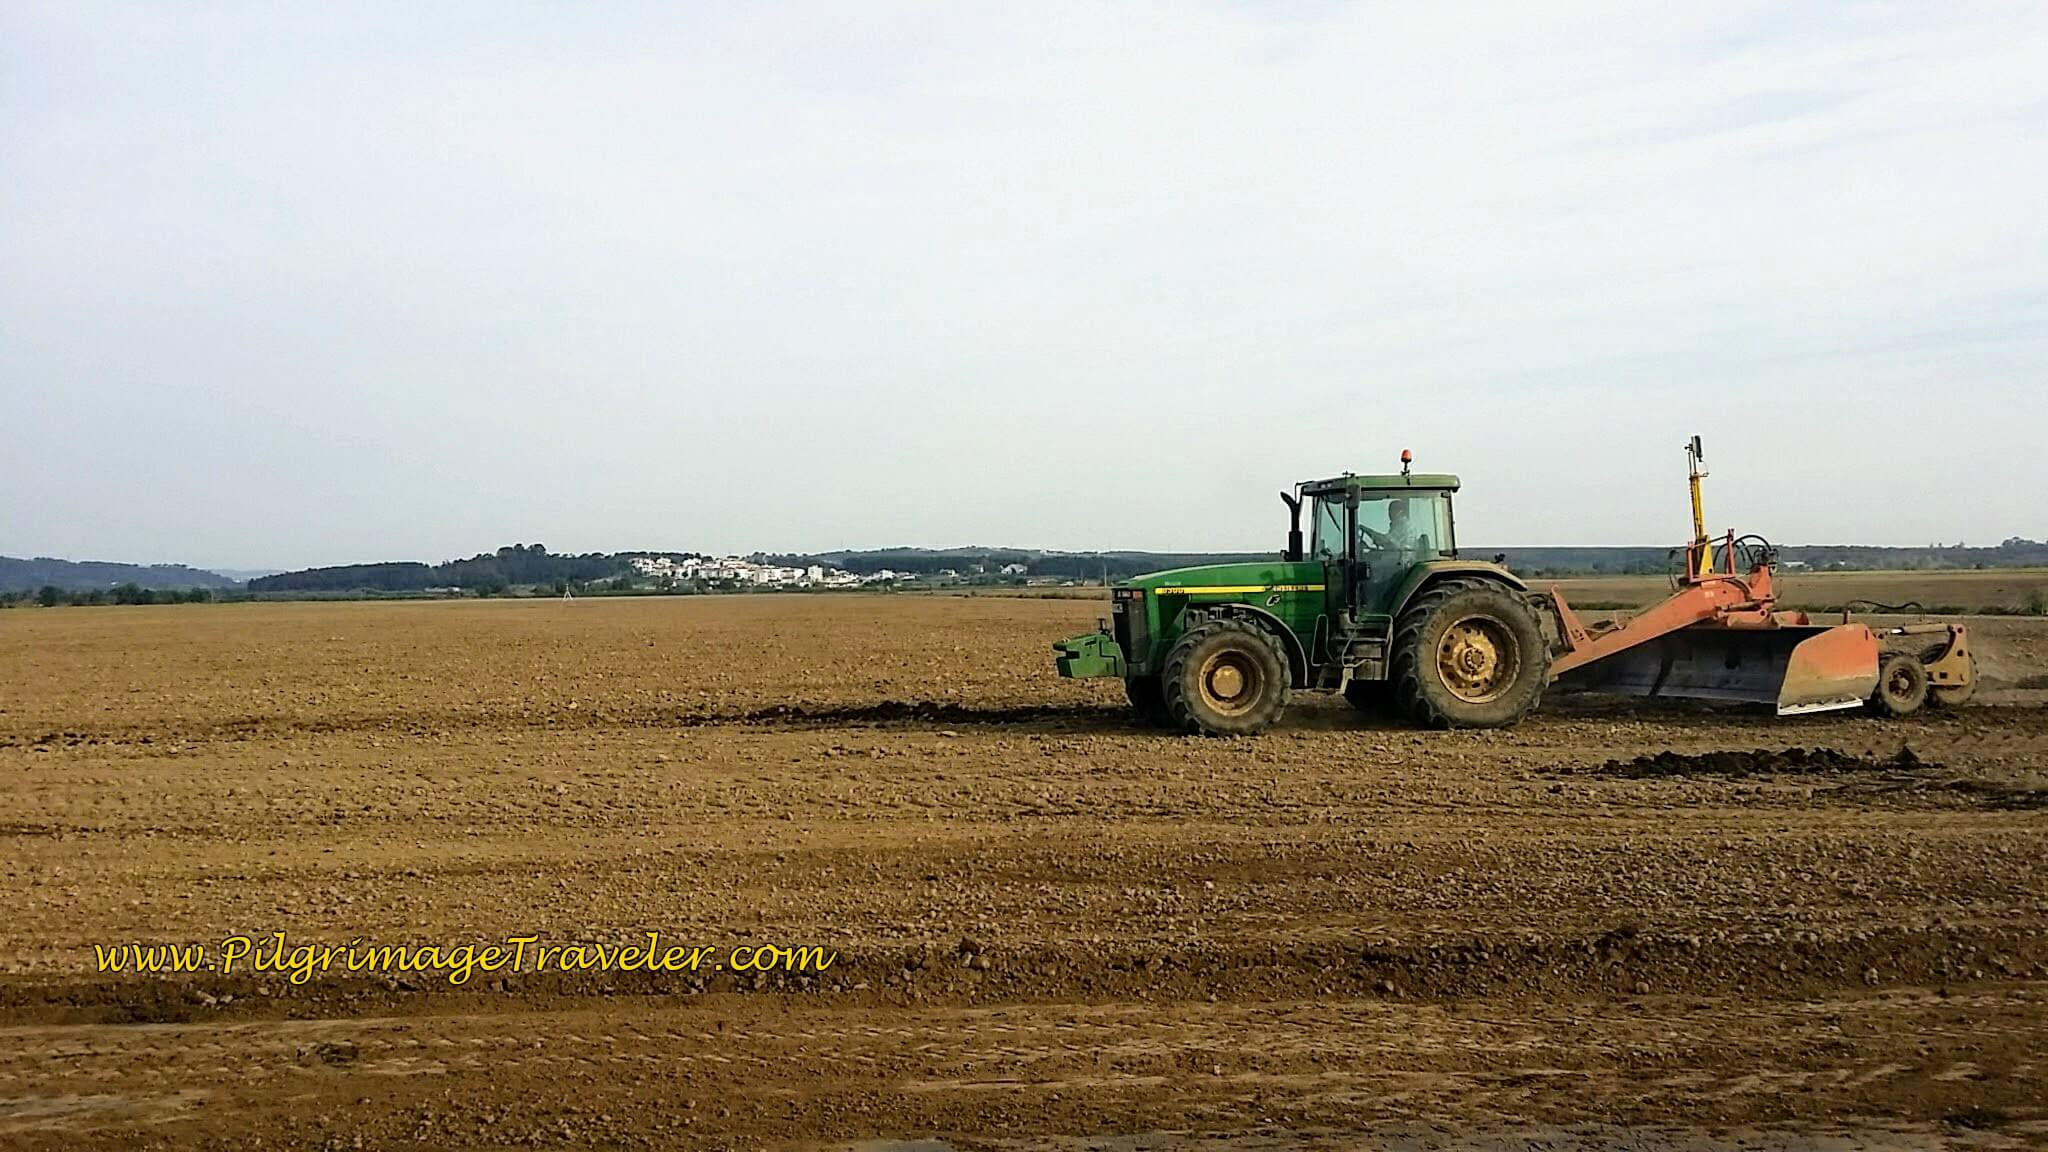 Tractor Readying the Field for Planting